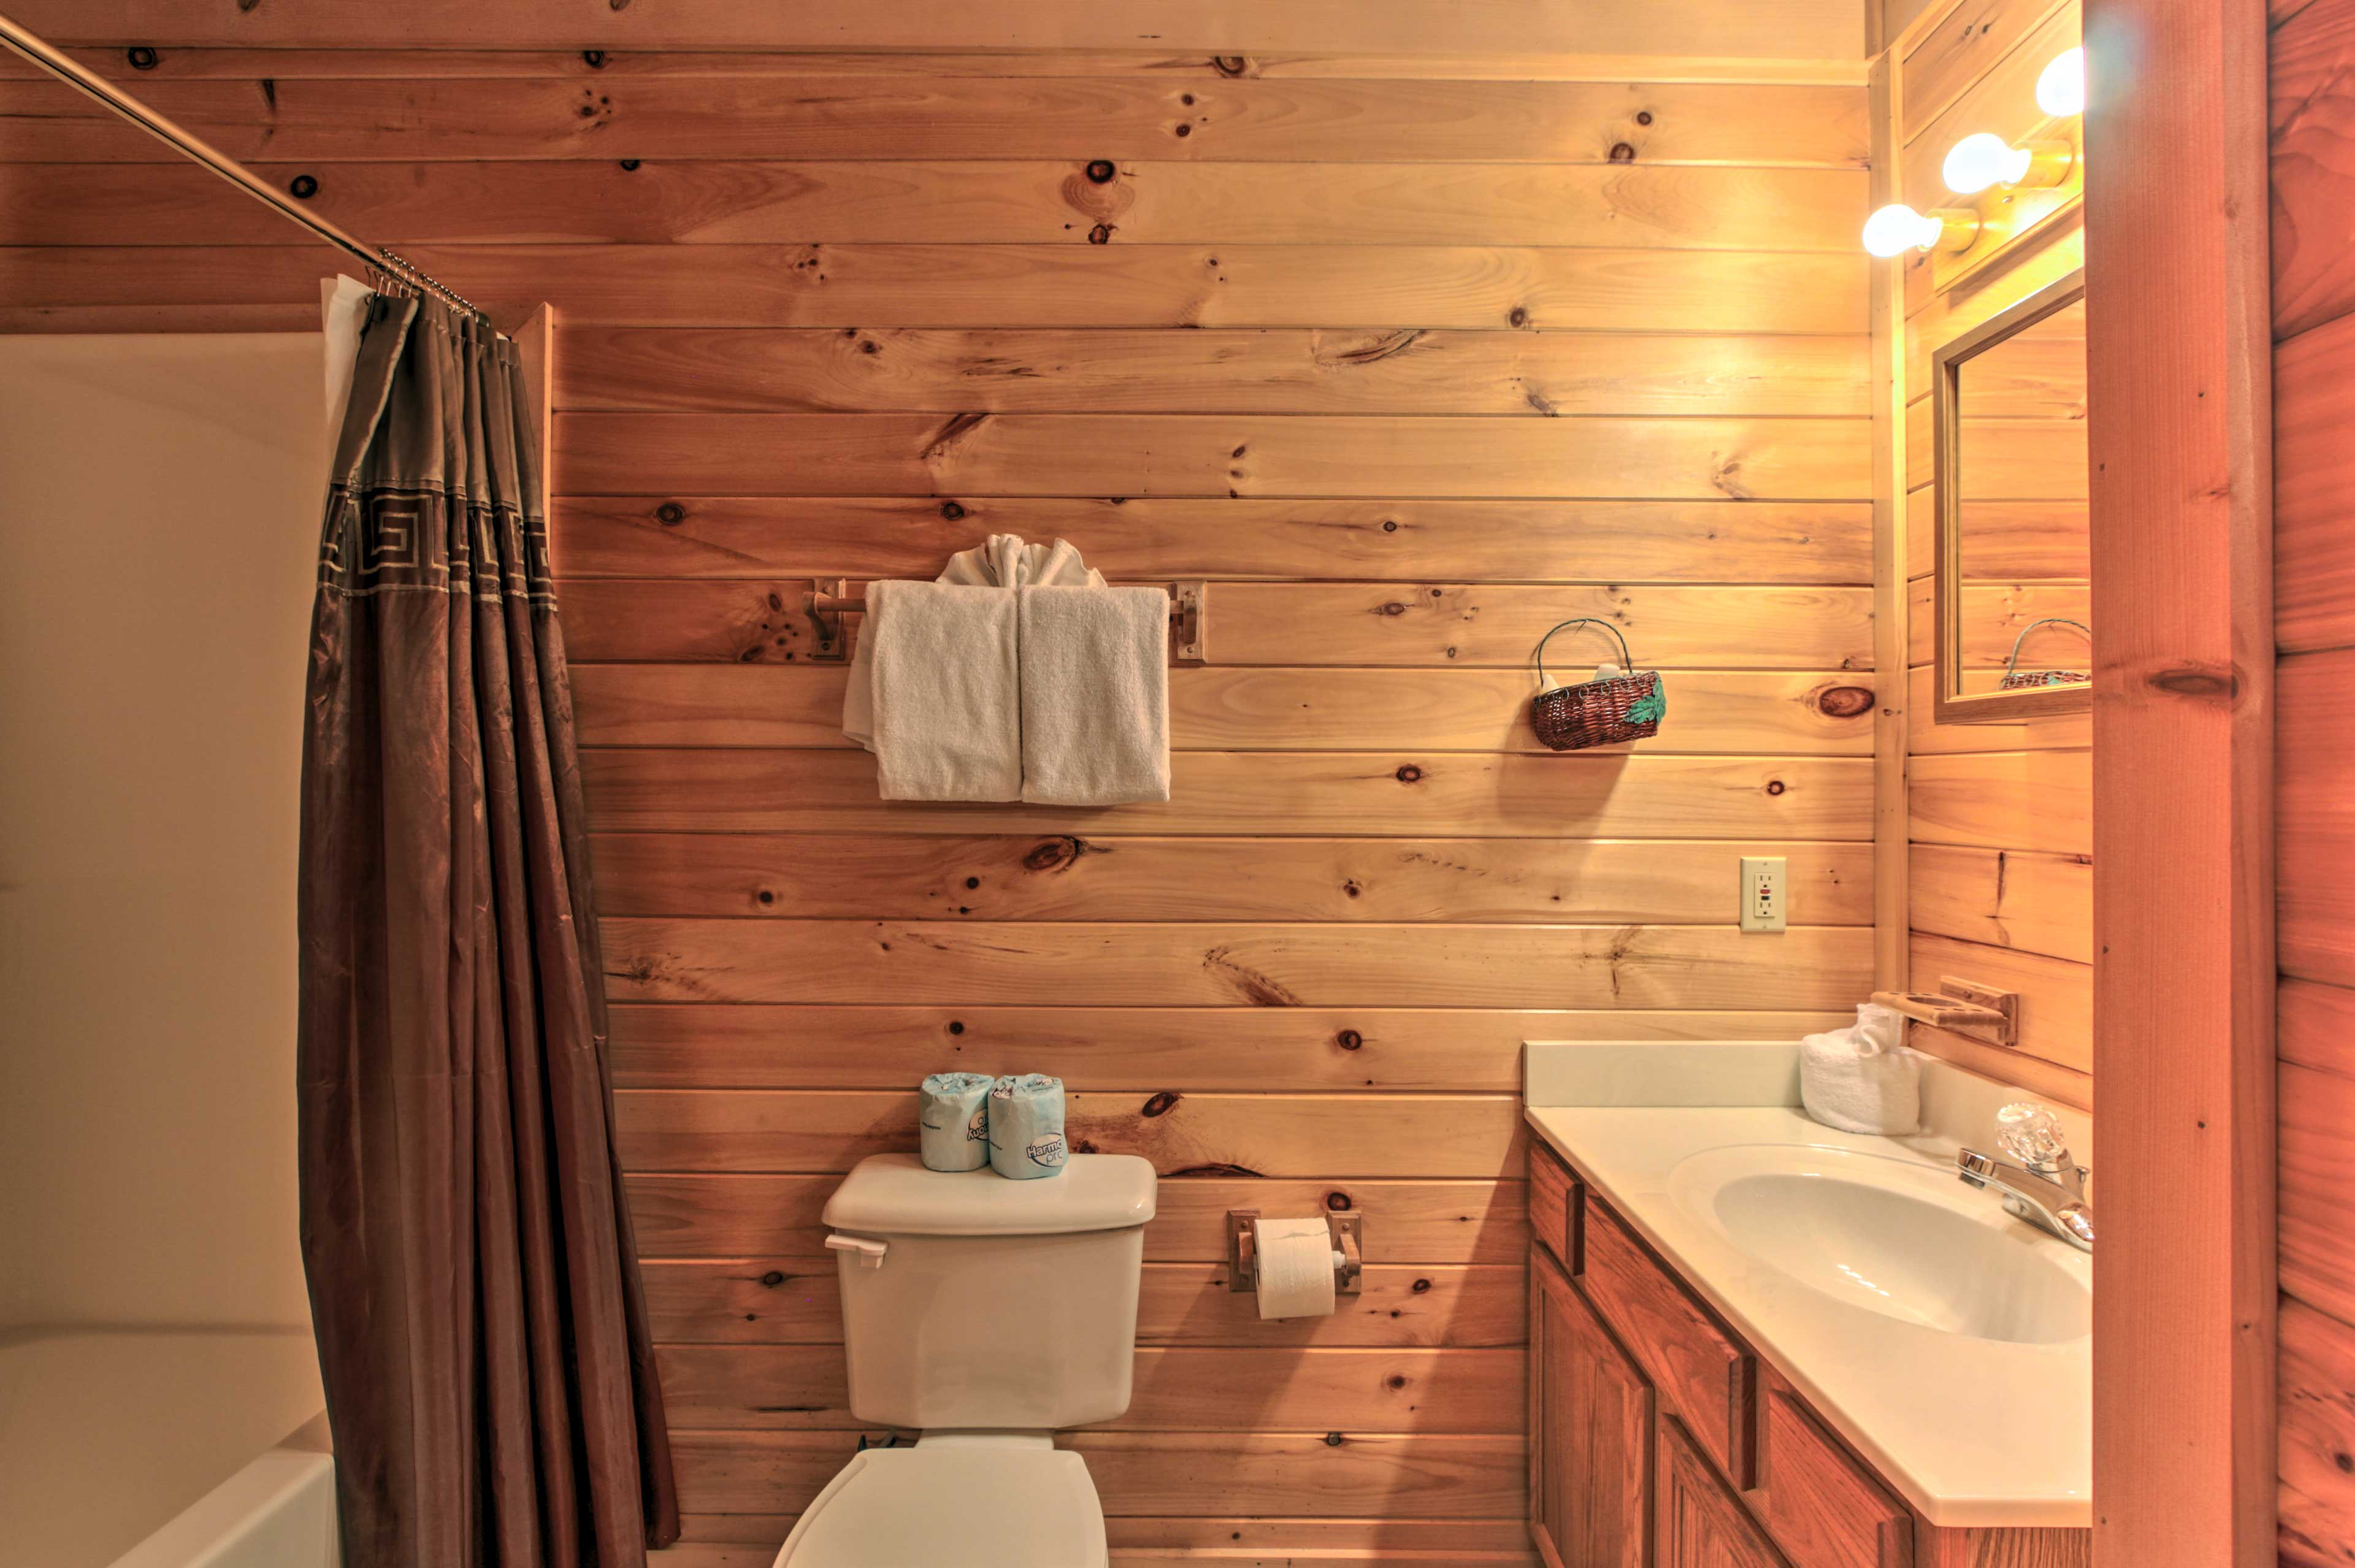 The en-suite bathroom has a shower/tub combo and room for your toiletries.